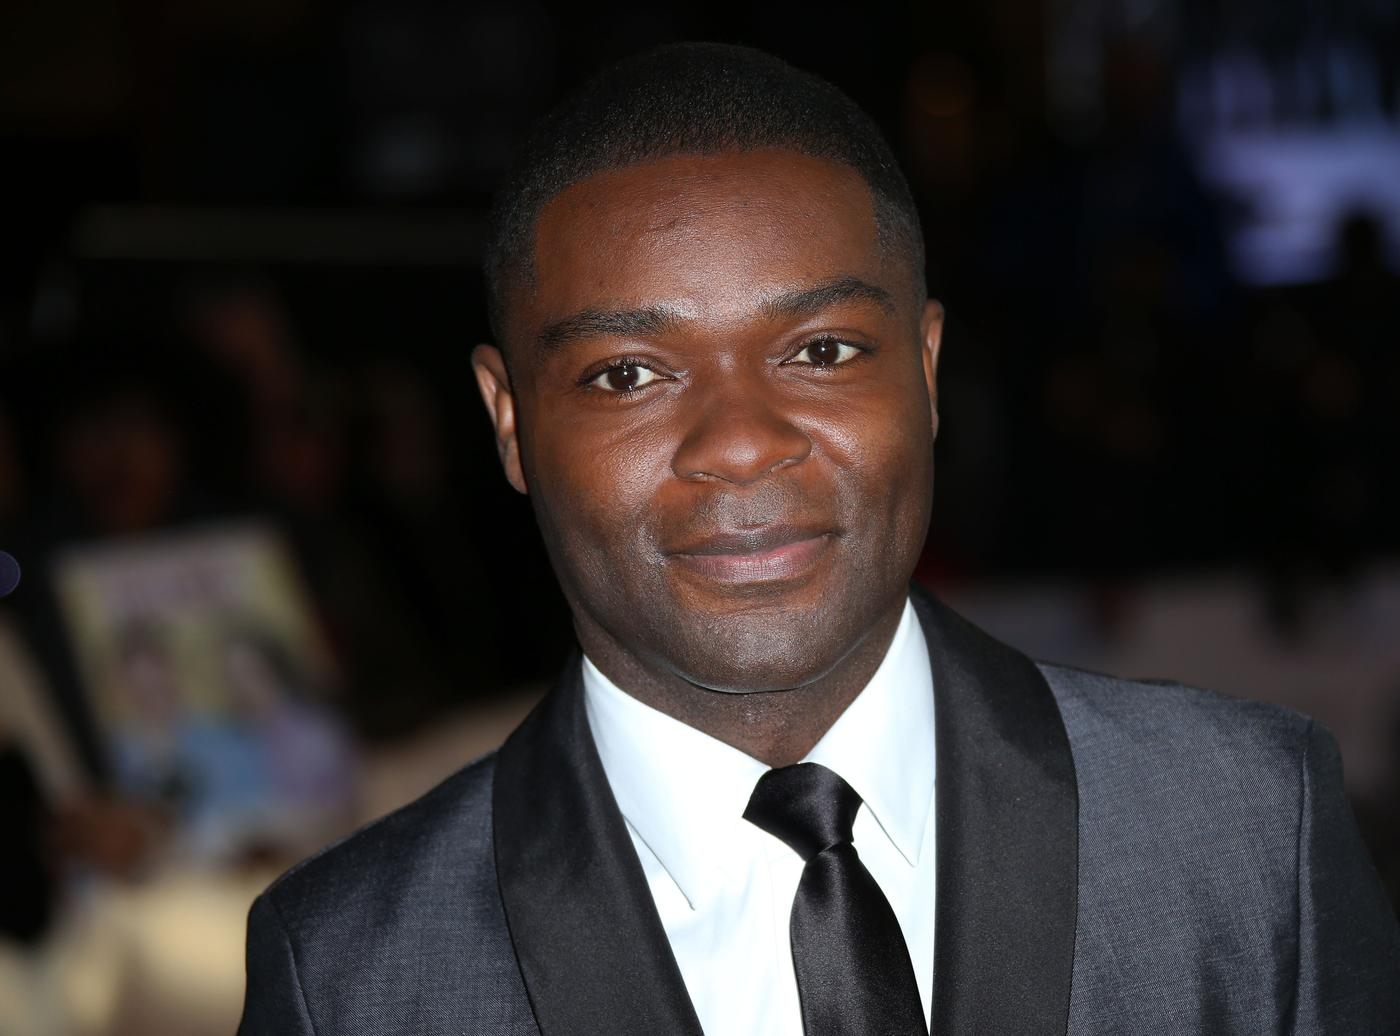 Selma star David Oyelowo was 'pushed out of UK' due to lack of roles for black actors